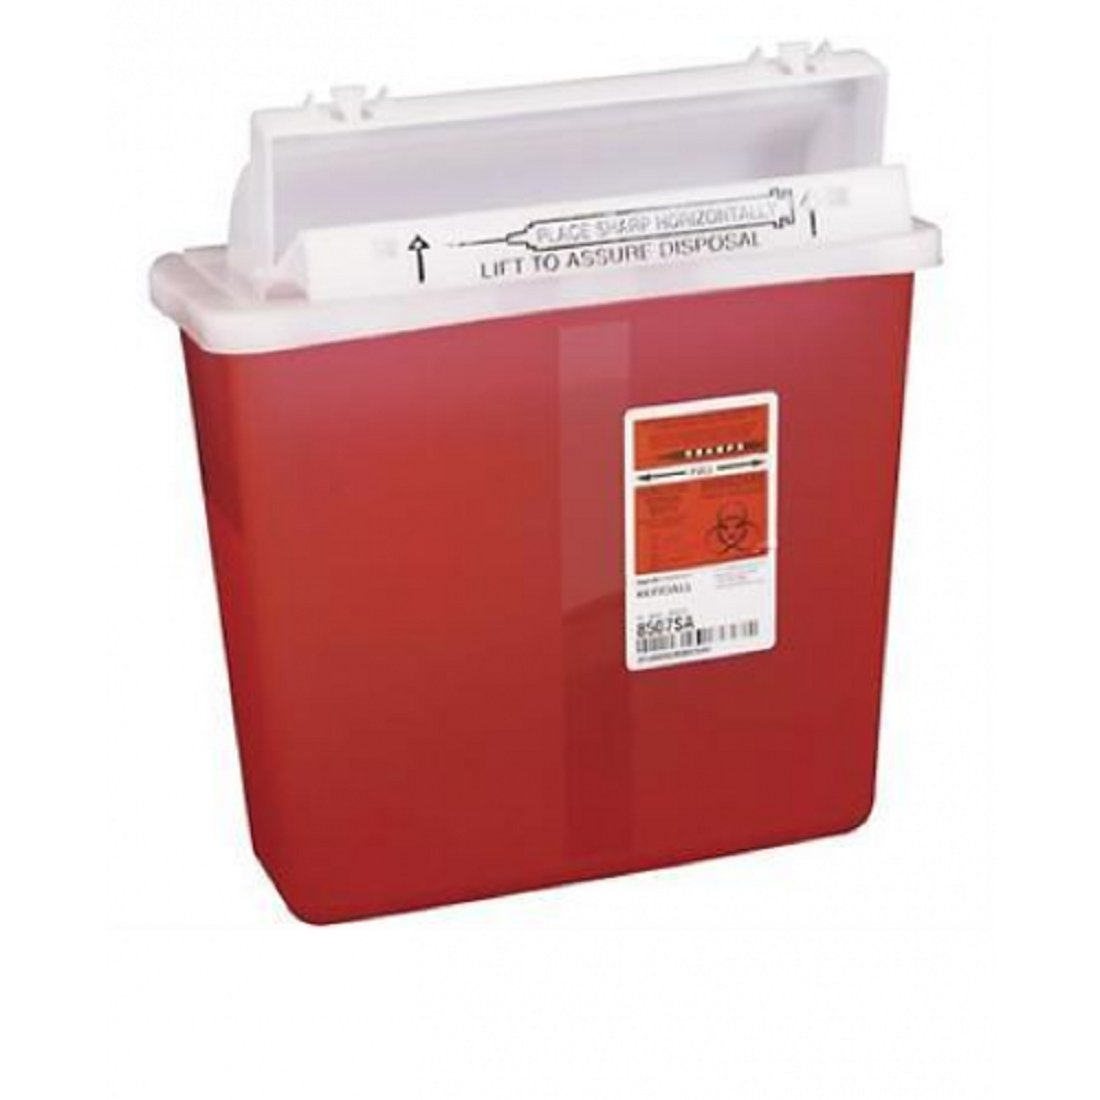 Covidien Medical 8507SA Covidien Kendall In-Room Sharps Container, 10.75W x 5.5D x 12.5H In. 20 Per Case